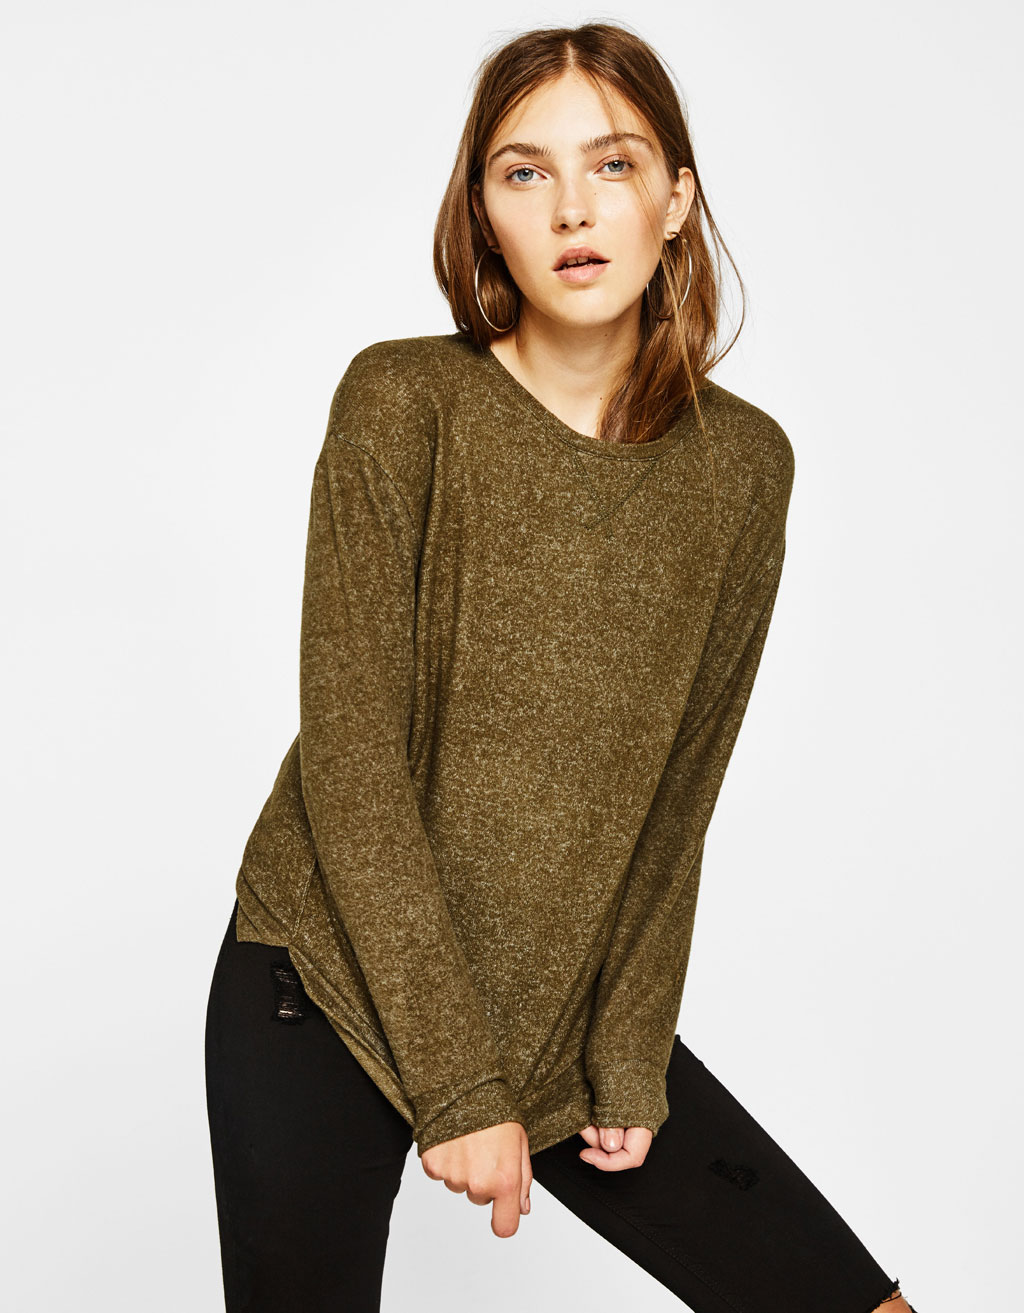 Knit sweater with seams